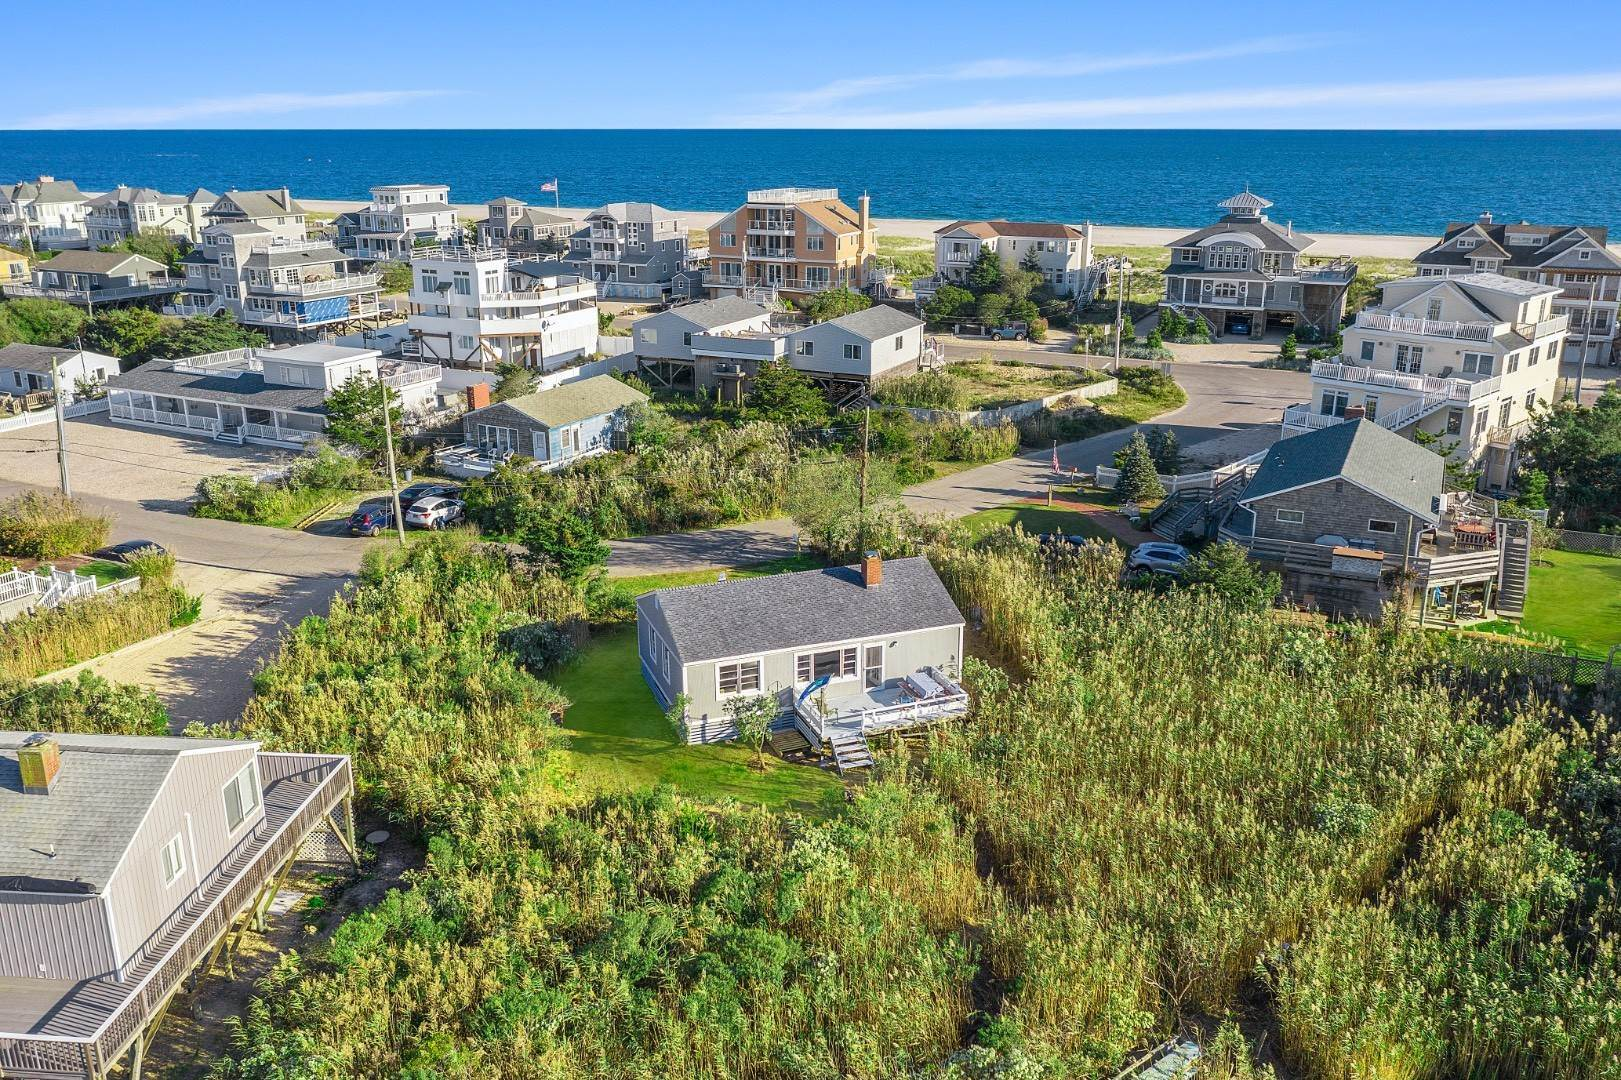 Single Family Home for Sale at Beach Cottage By The Bay With Ocean Access 36 Dune Lane, Westhampton Dunes Village, NY 11978